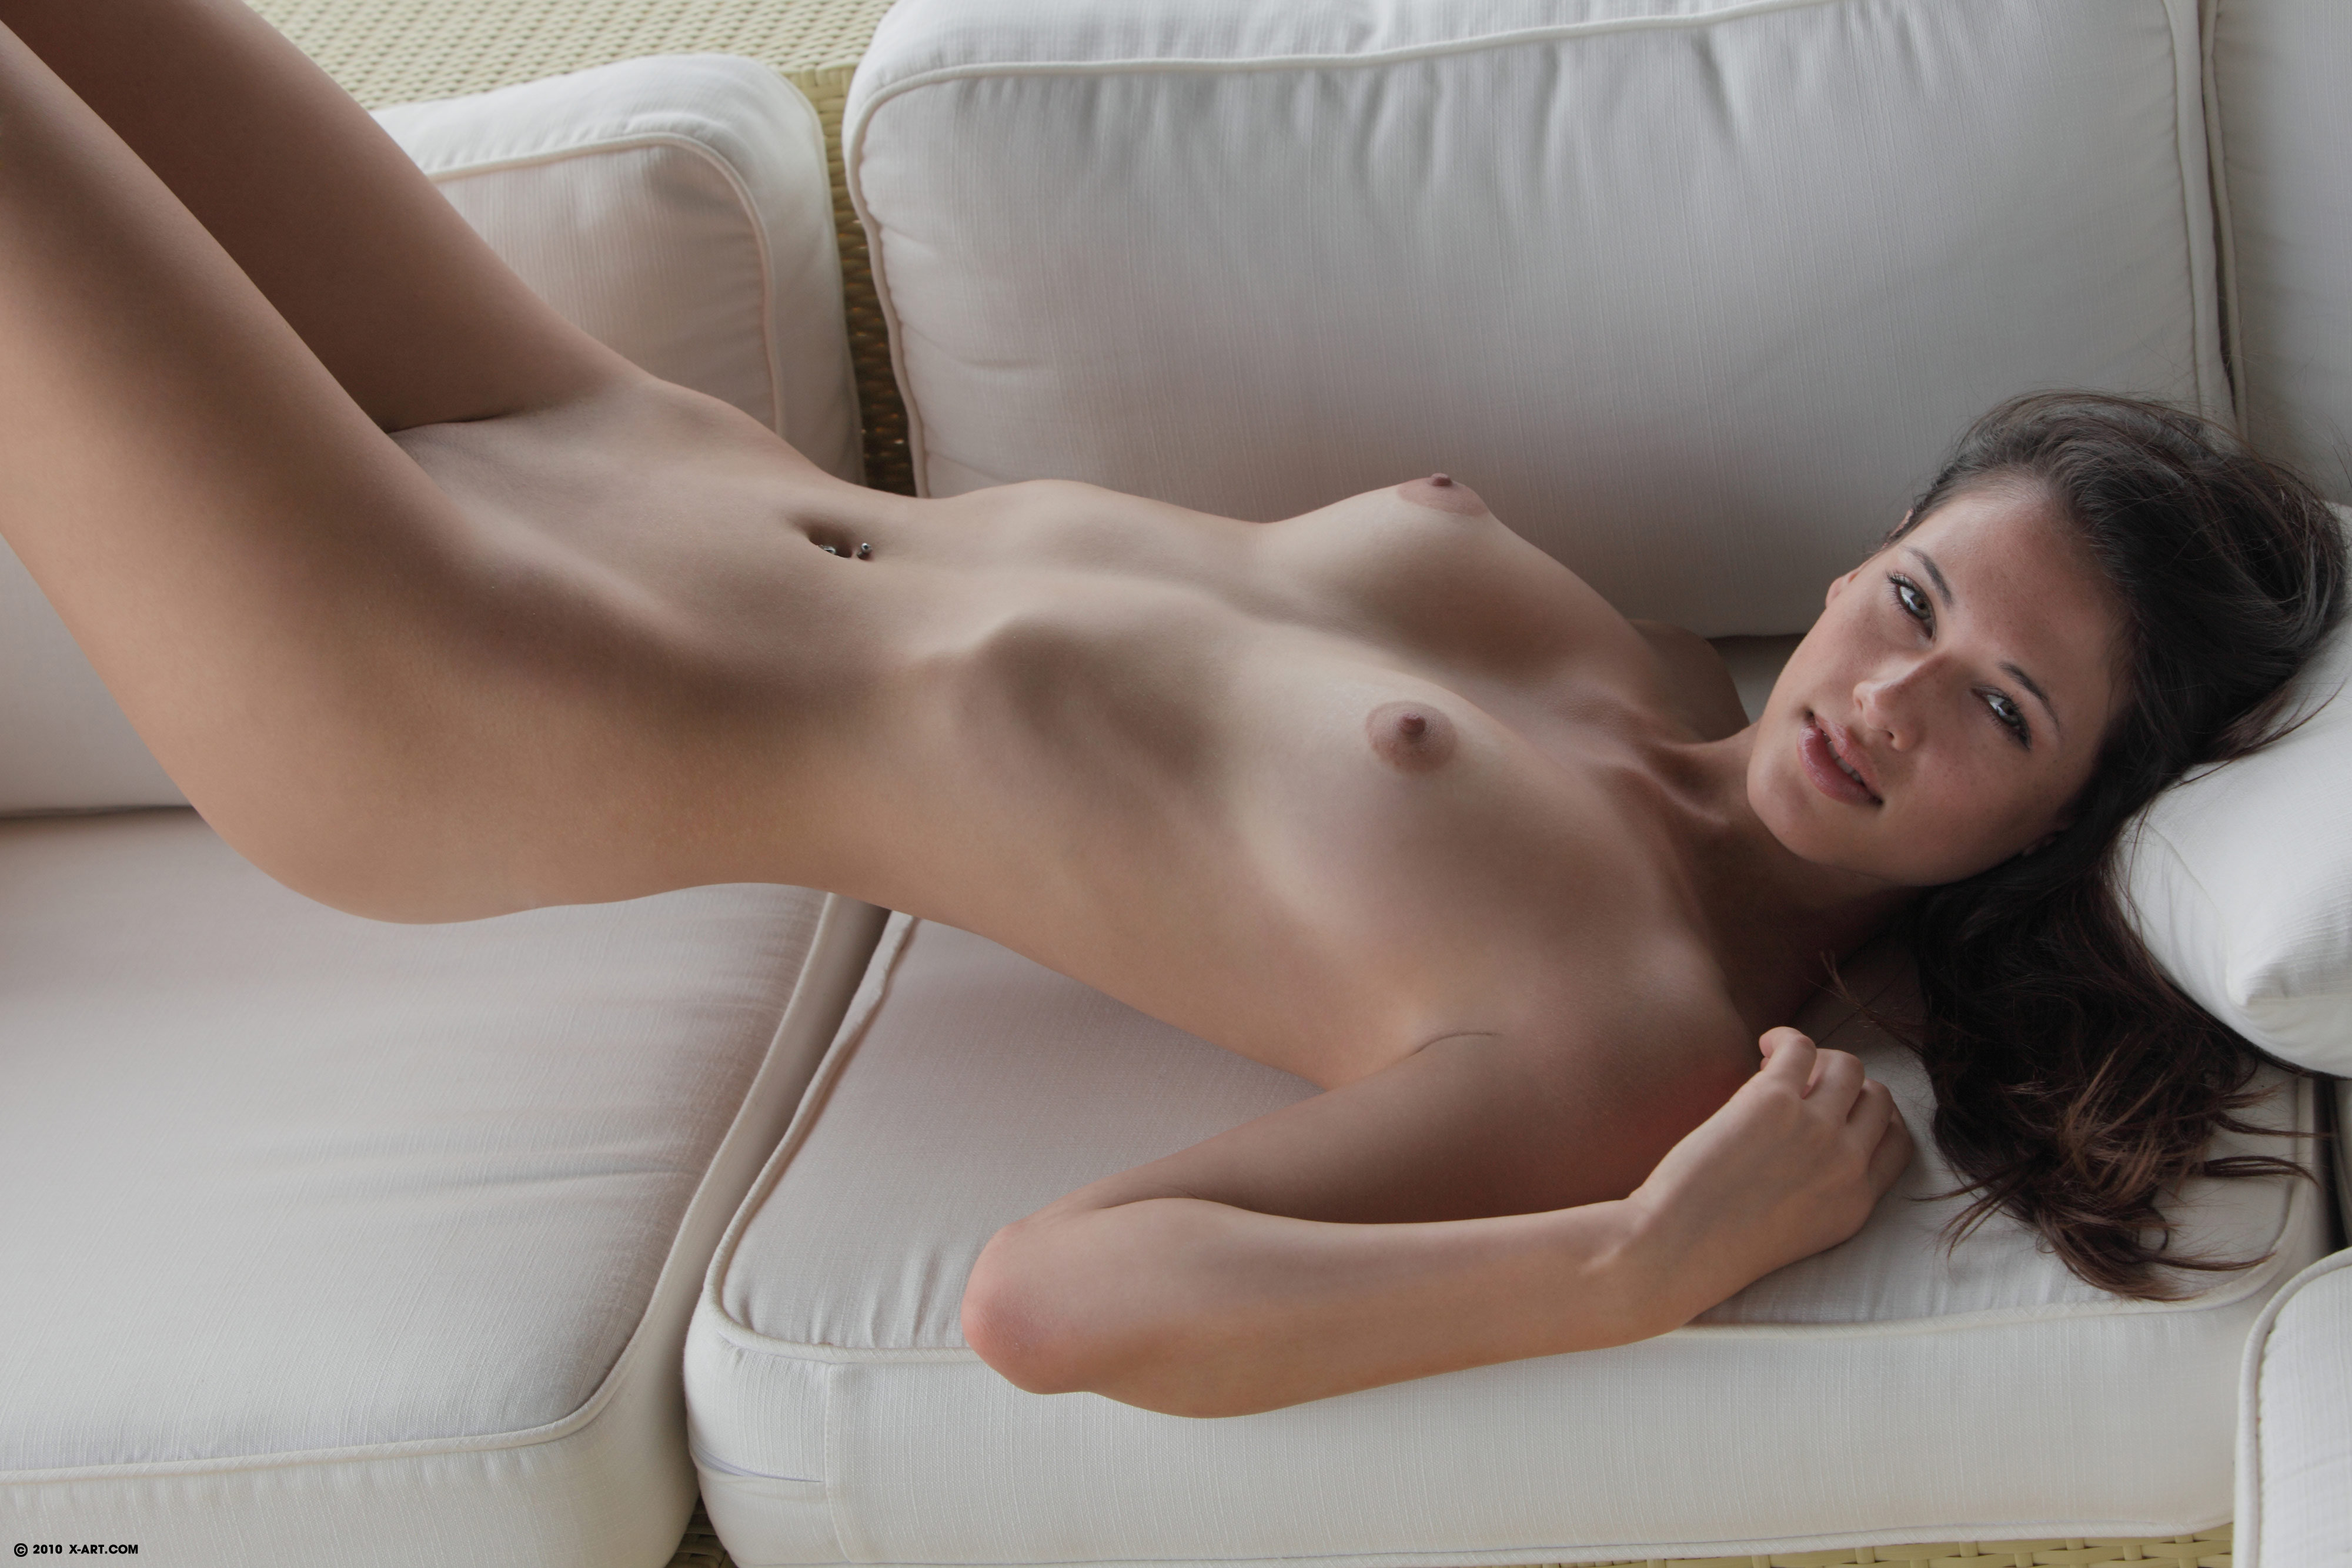 warc  nsfw someone woman just bunch celebs hack became duck epical fuck